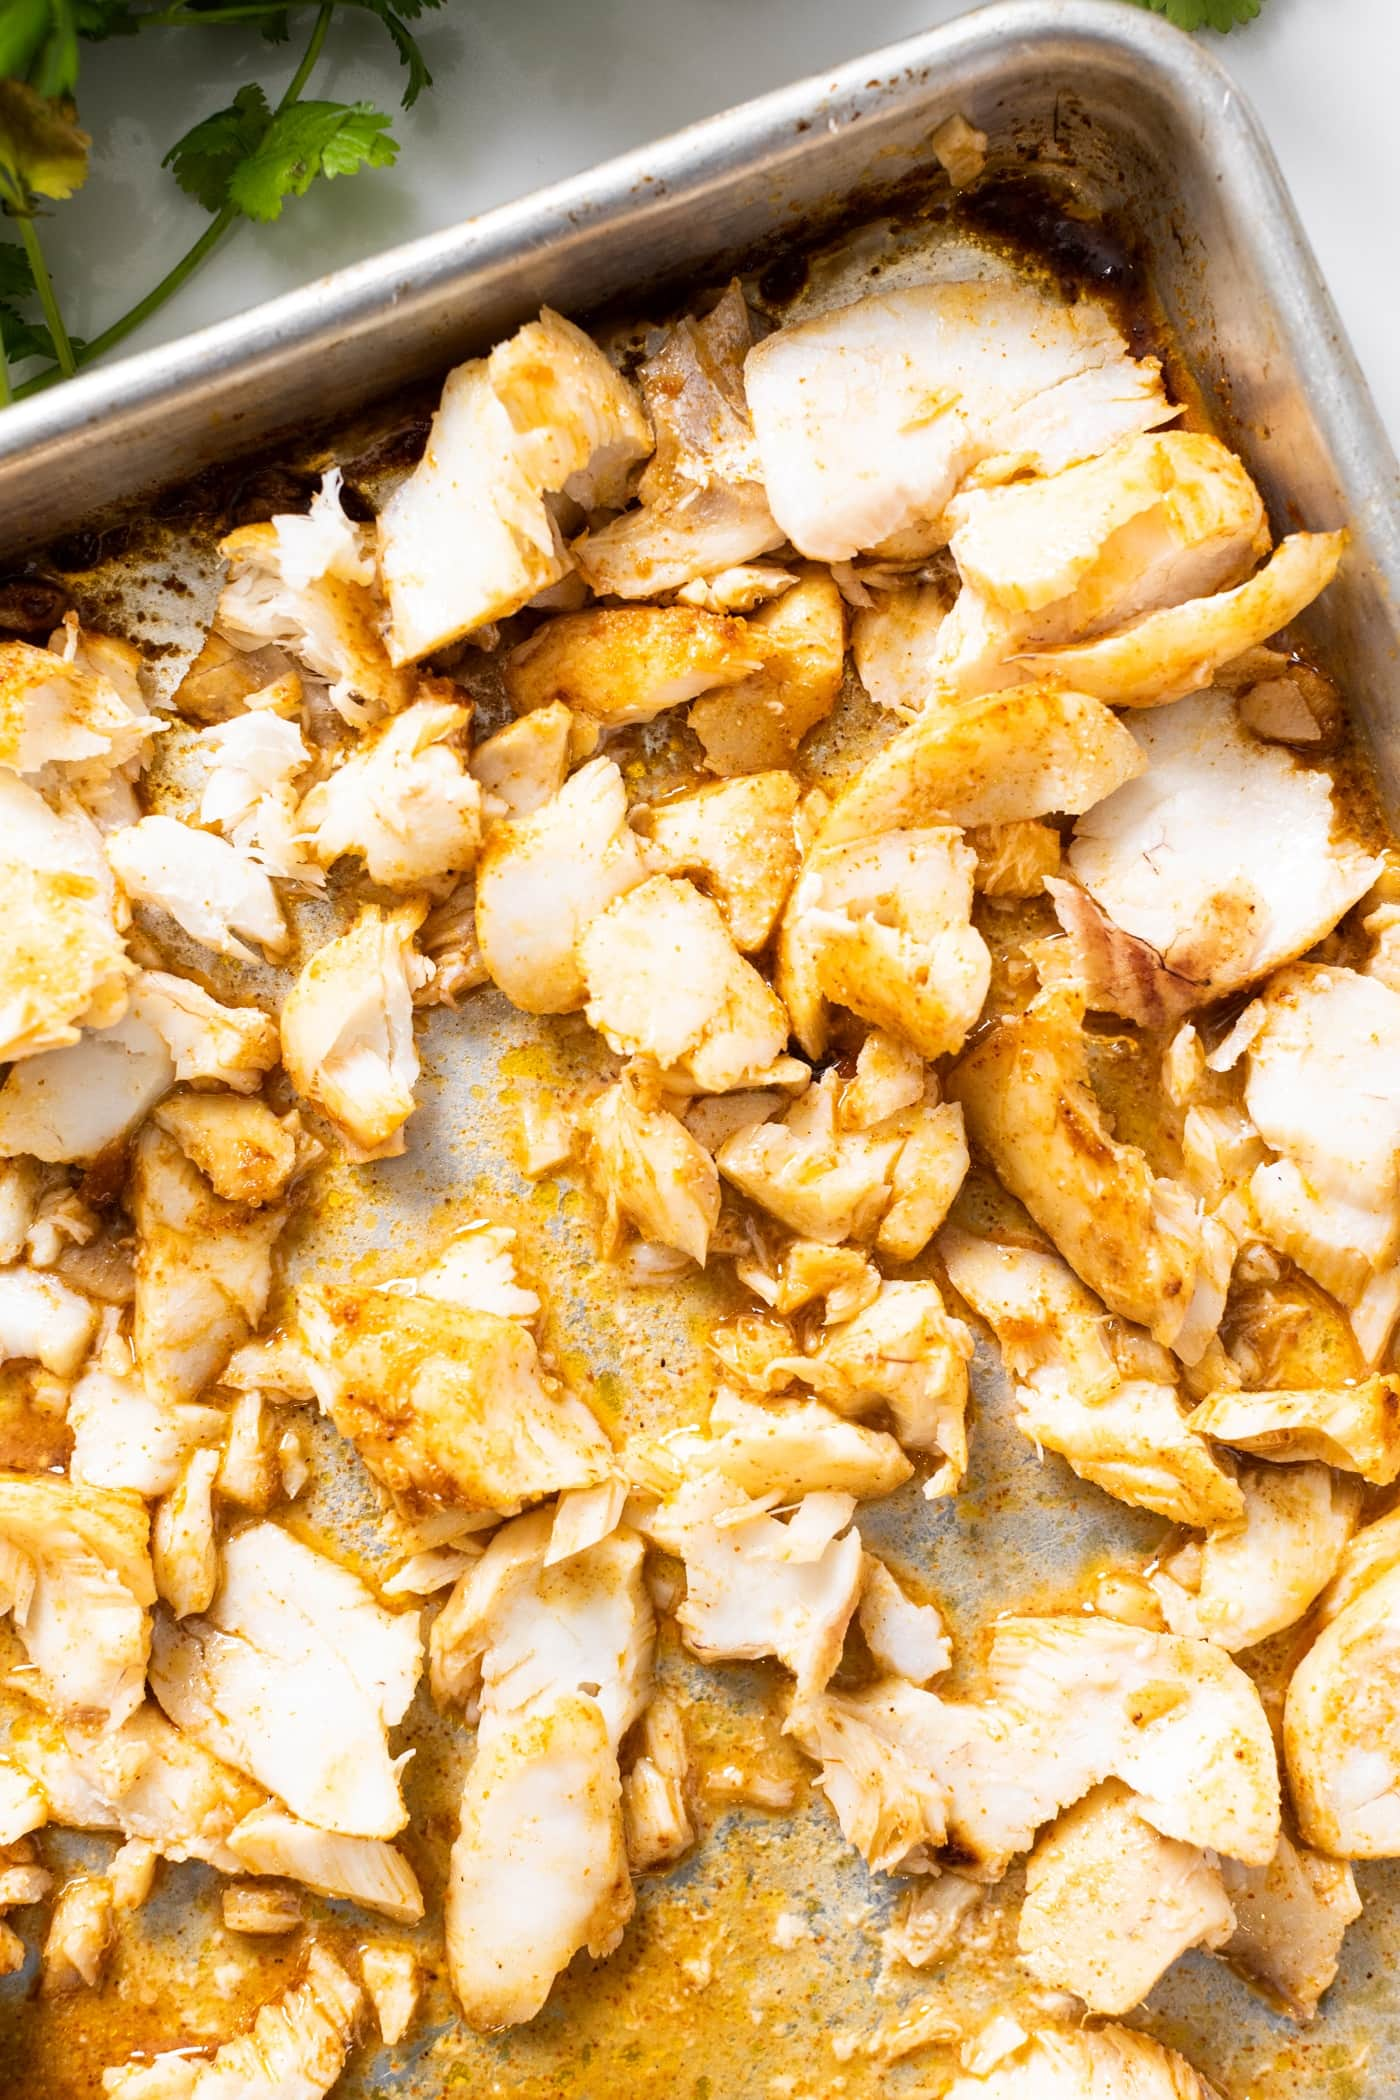 Top down view of shredded cod after being roasted in oven and topped with spices